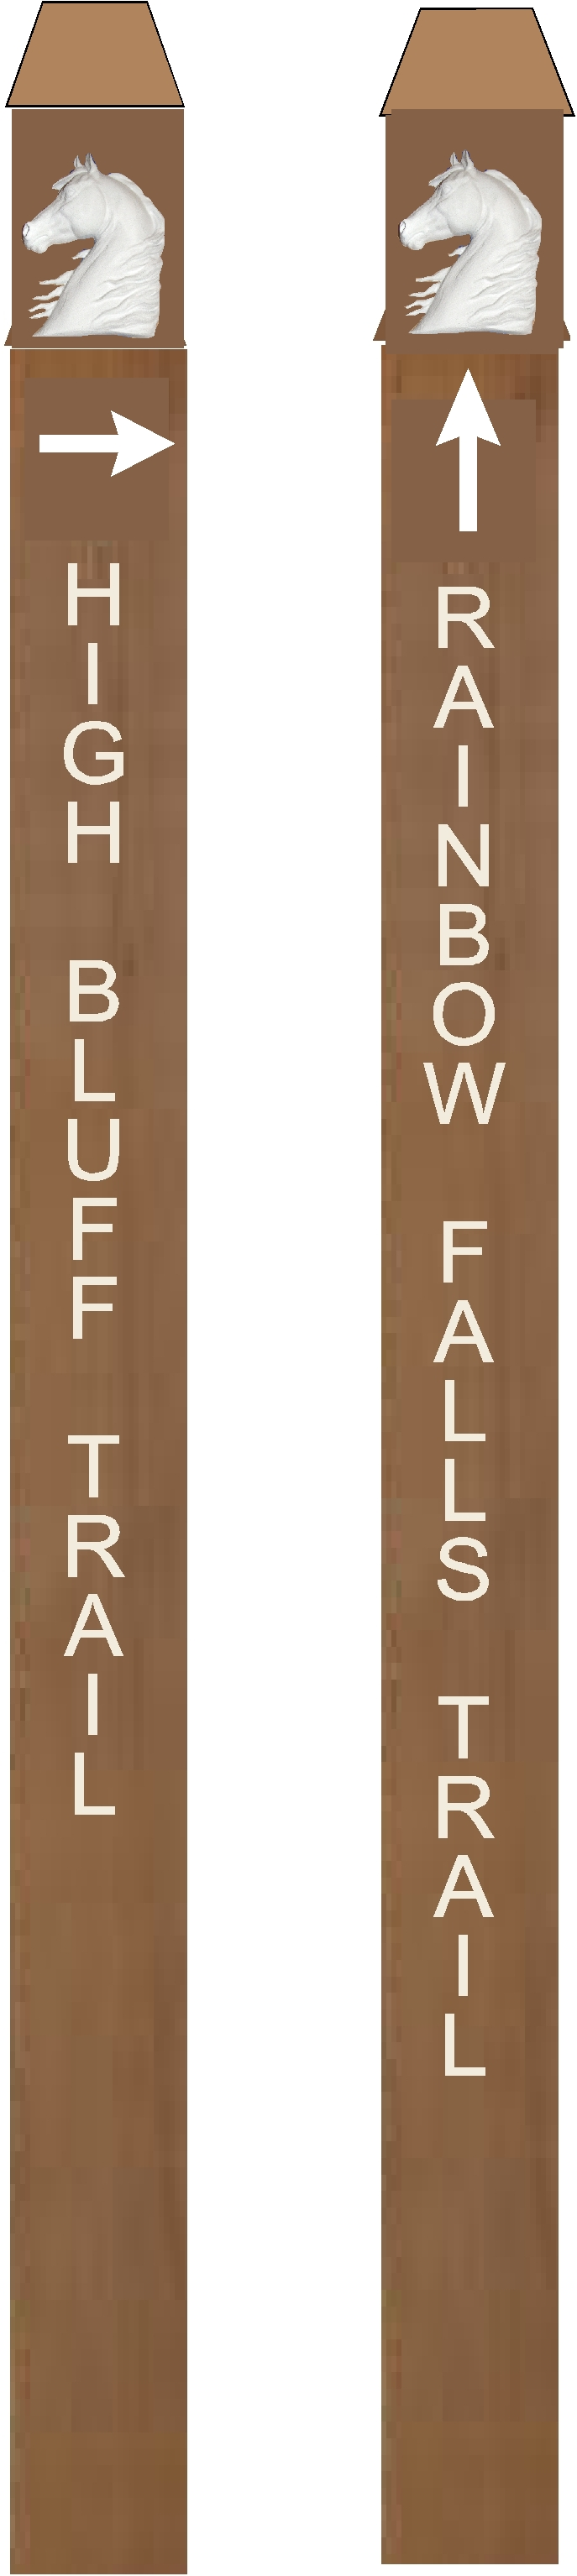 P25502 - Custom Redwood Post Equestrian Trail Markers